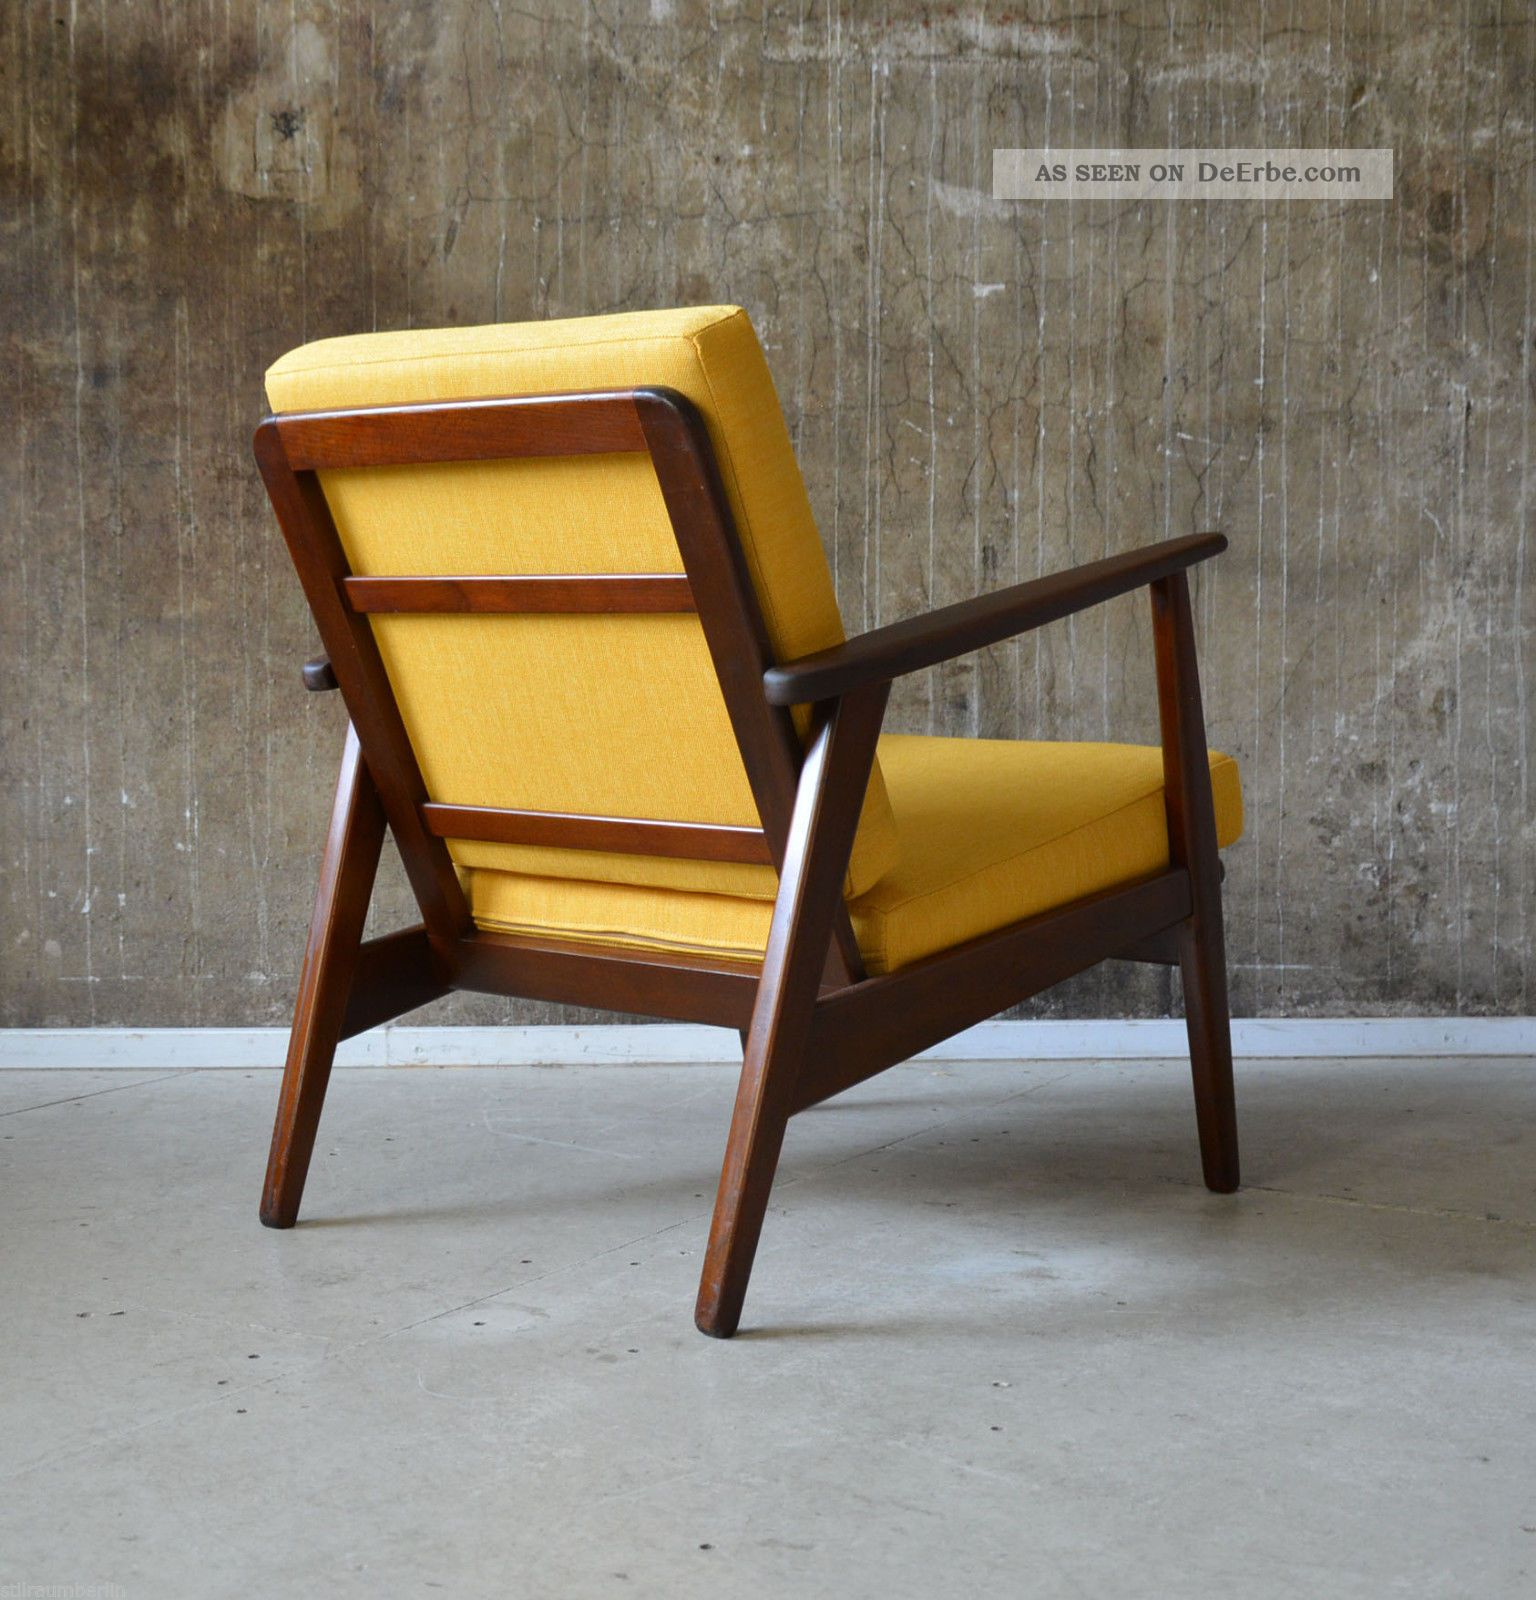 Design Sessel Retro Look 60er Teak Sessel Danish Design 60s Easy Chair Vintage